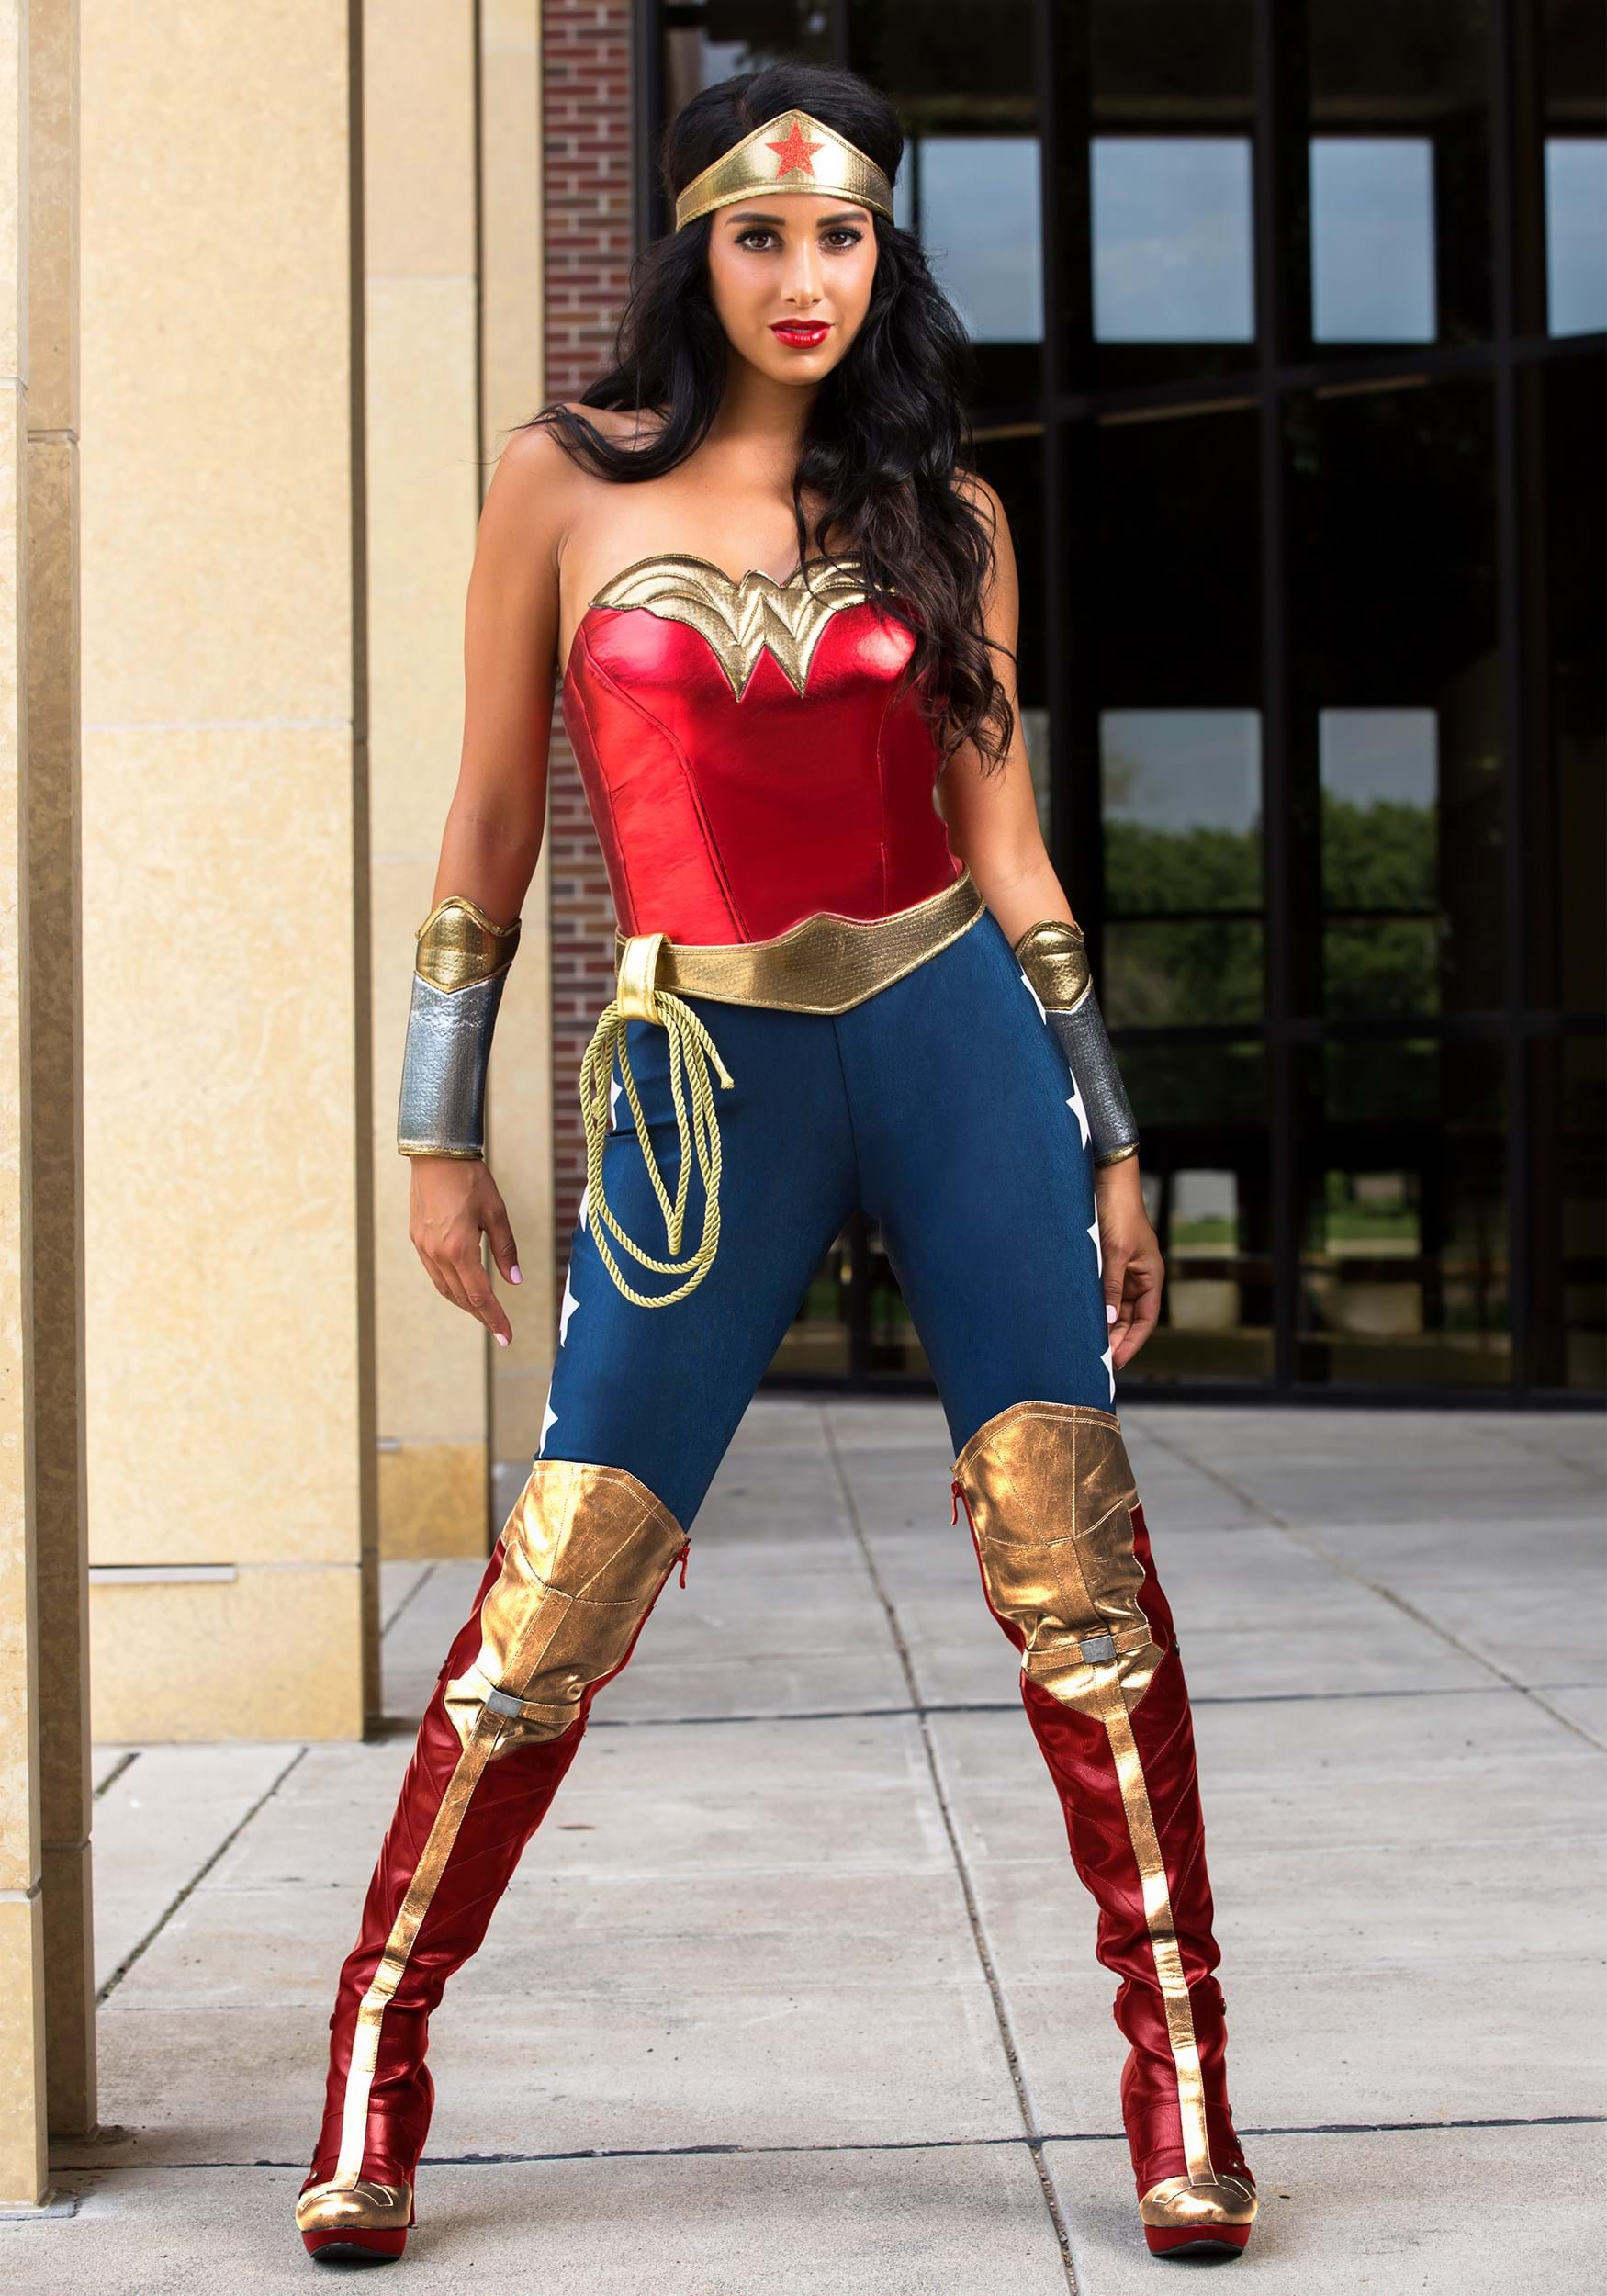 Wonder Woman Costumes for Girls   Women db85bd1e31e1